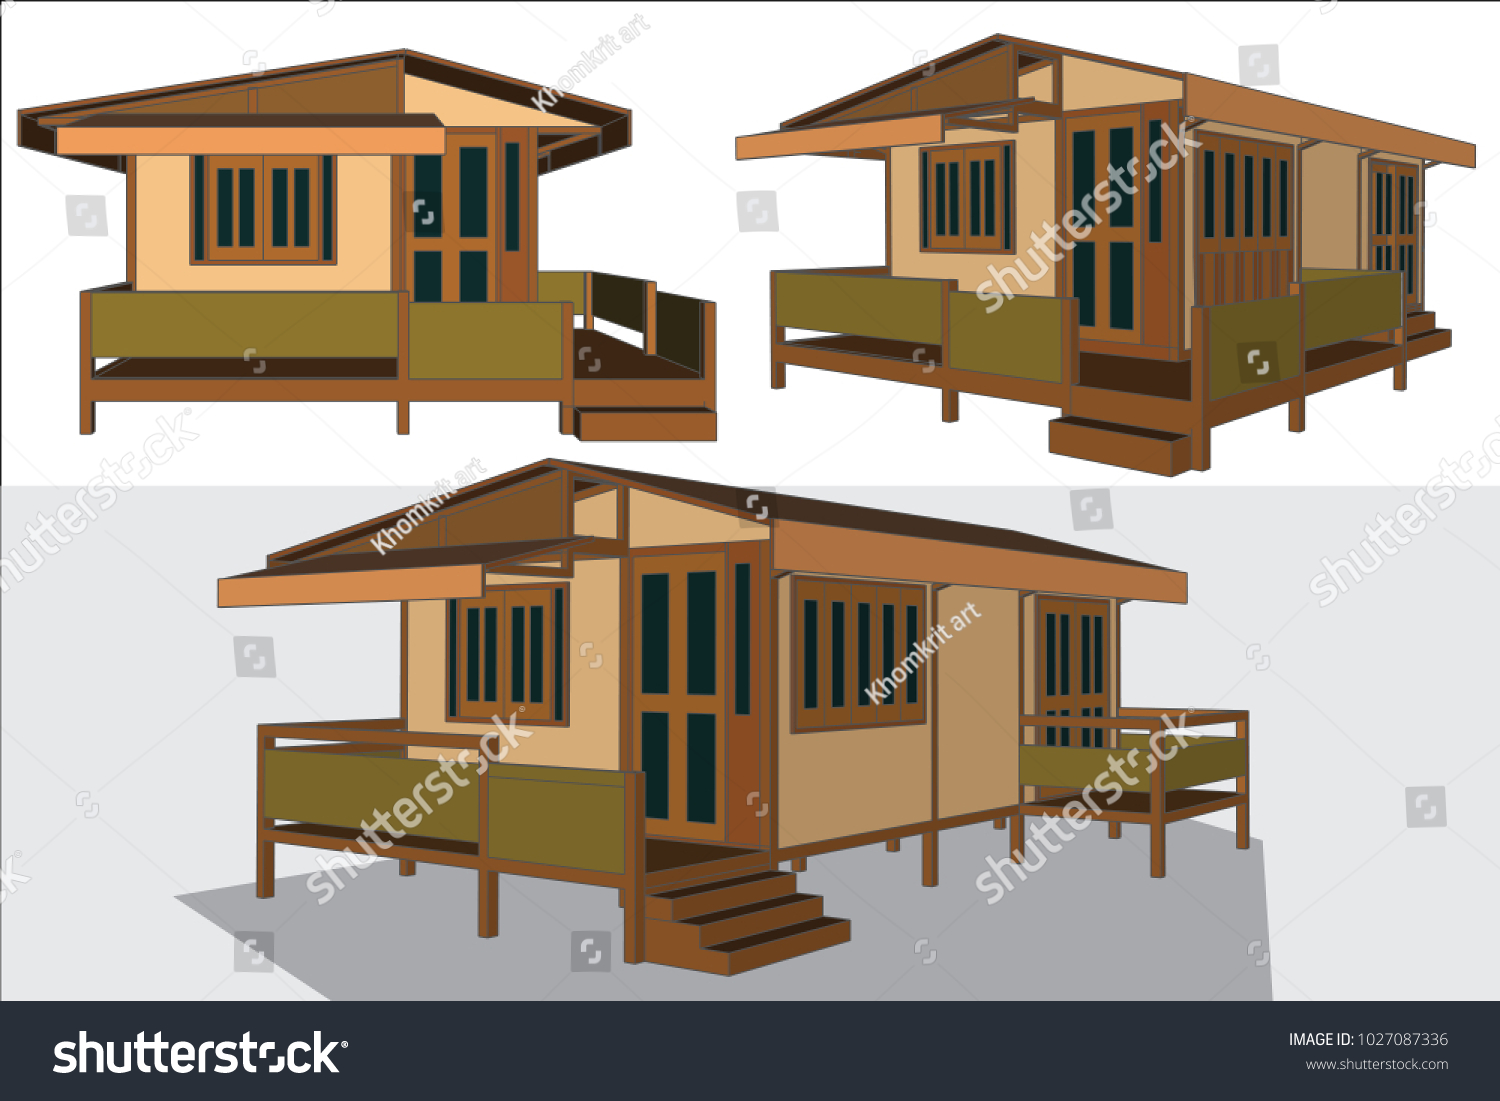 Asian House Design Thailand Vector Illustration Stock Vector ... on tradtional interior design, luxury home design, asian mansion makati condotel, log home with porches design, asian timber frame homes, safari style interior design, chinese home design, asian exterior, oriental home design, japanese style pergola design,